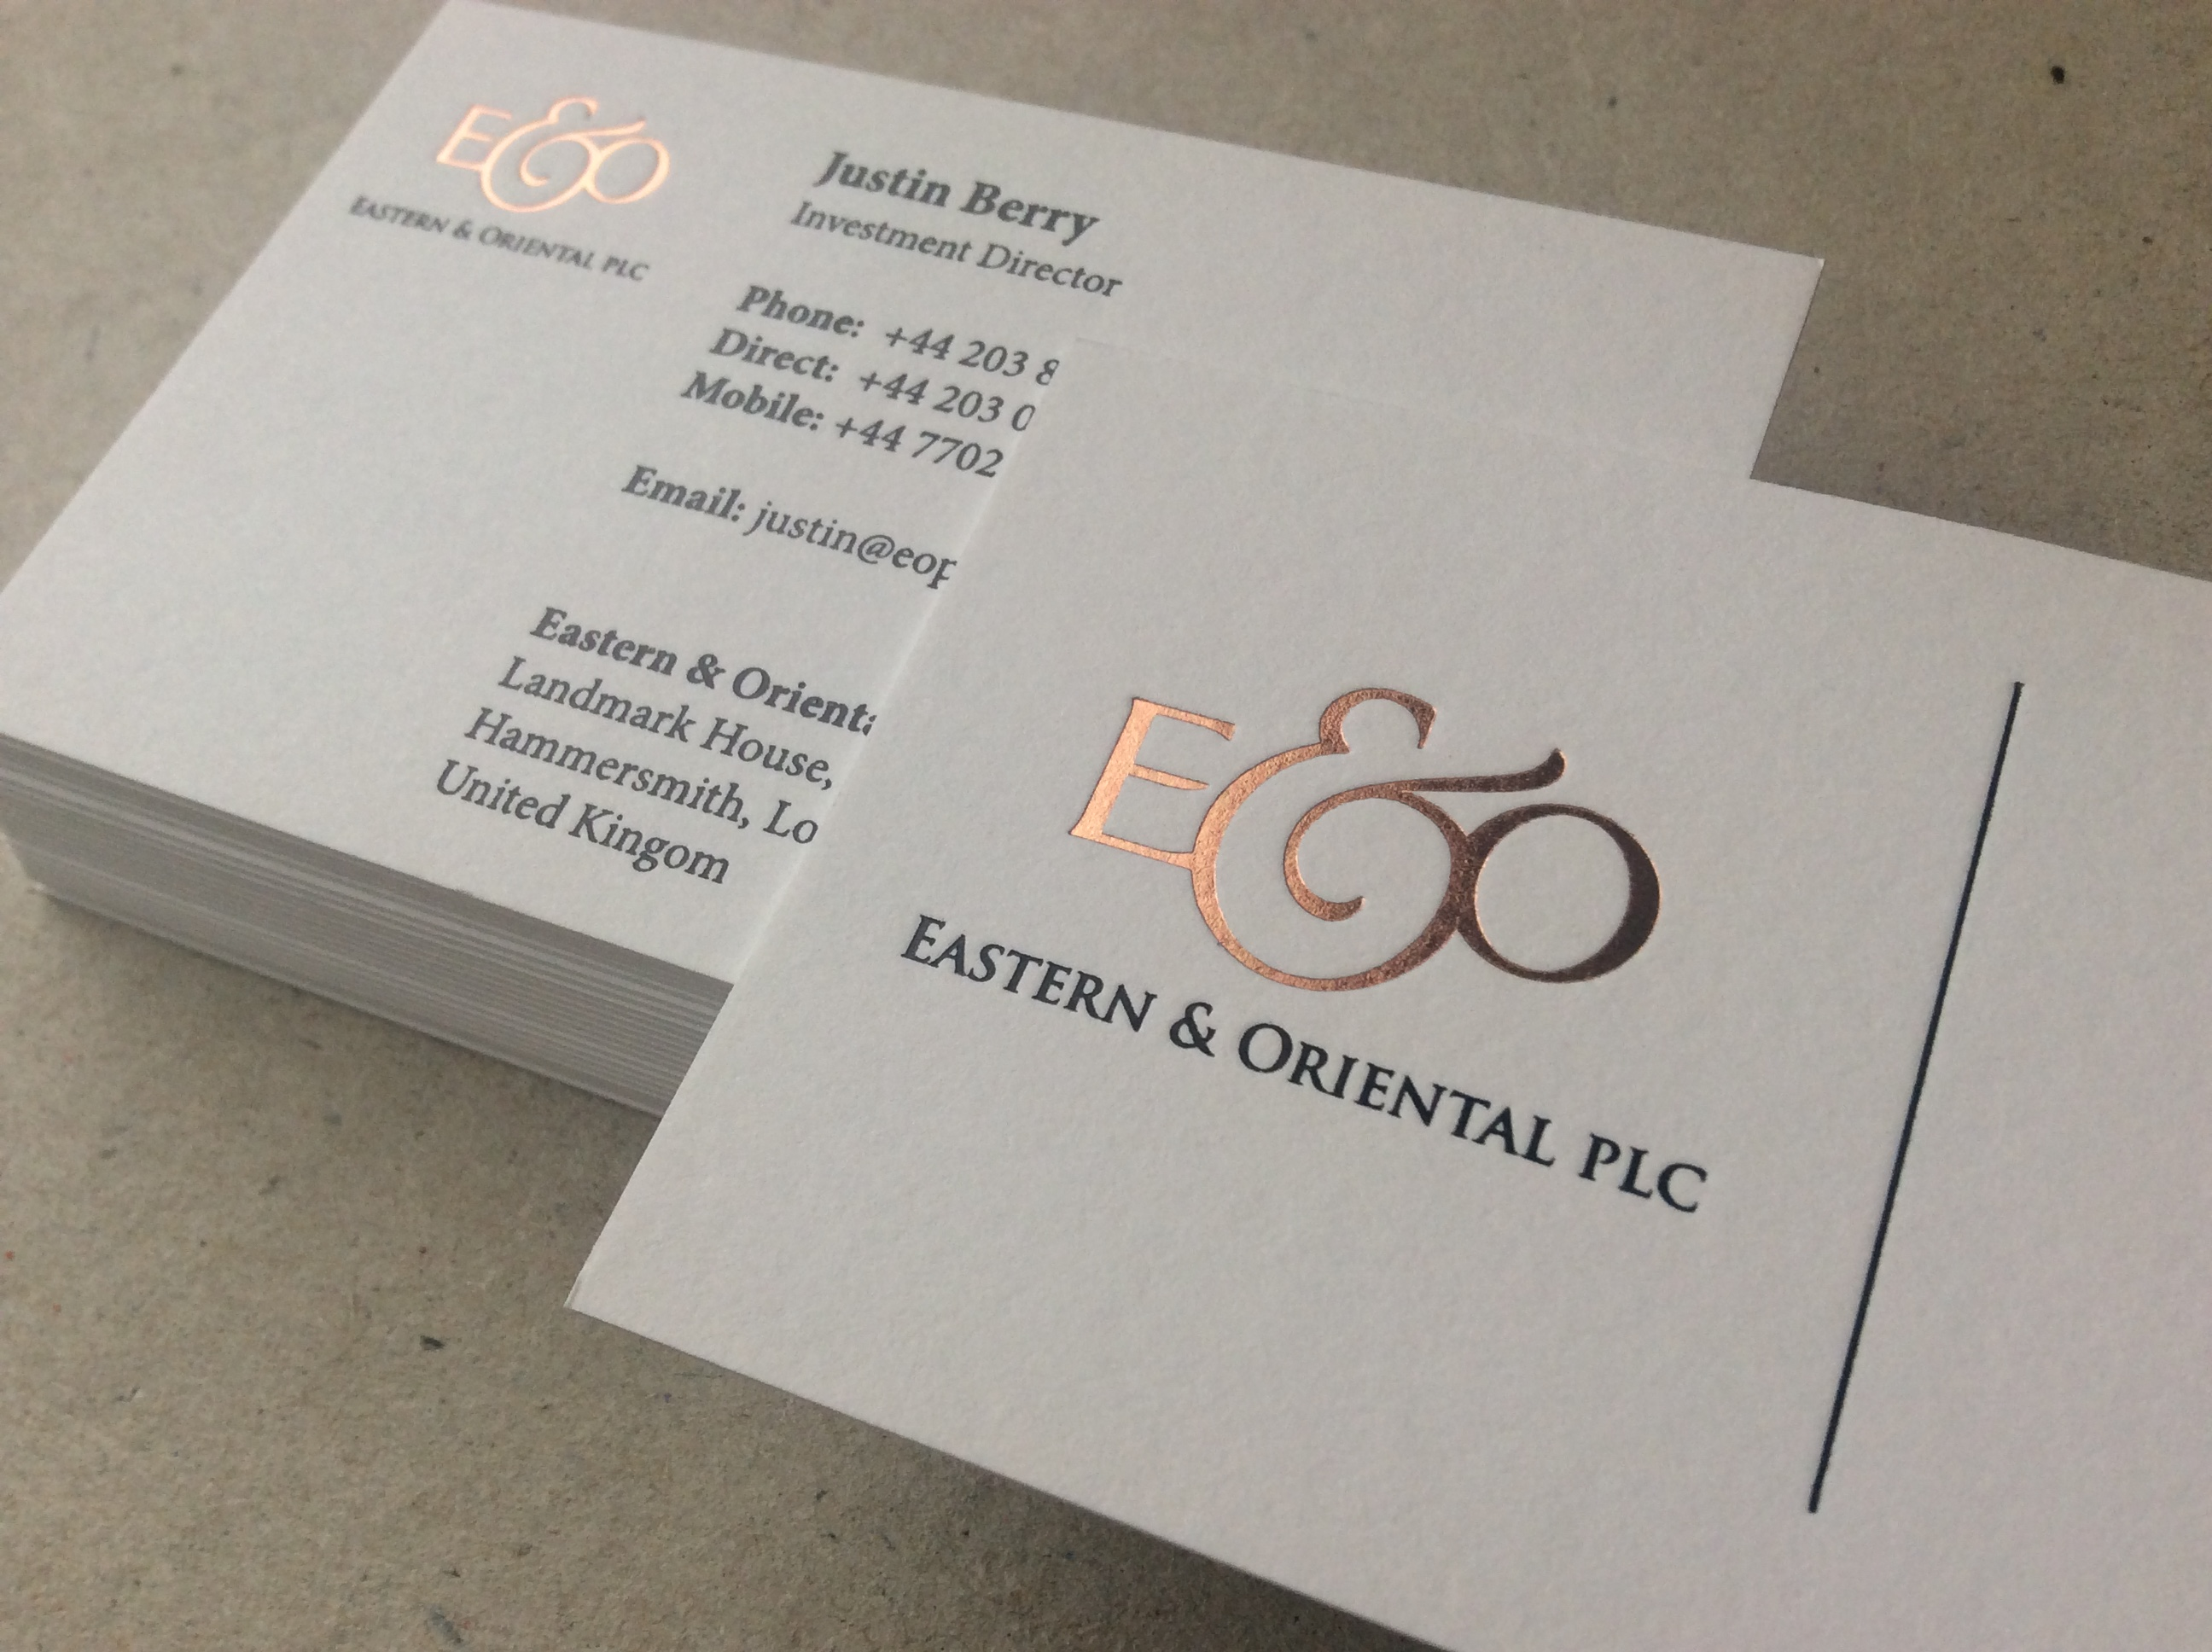 Quality Professional Business Cards | UBC